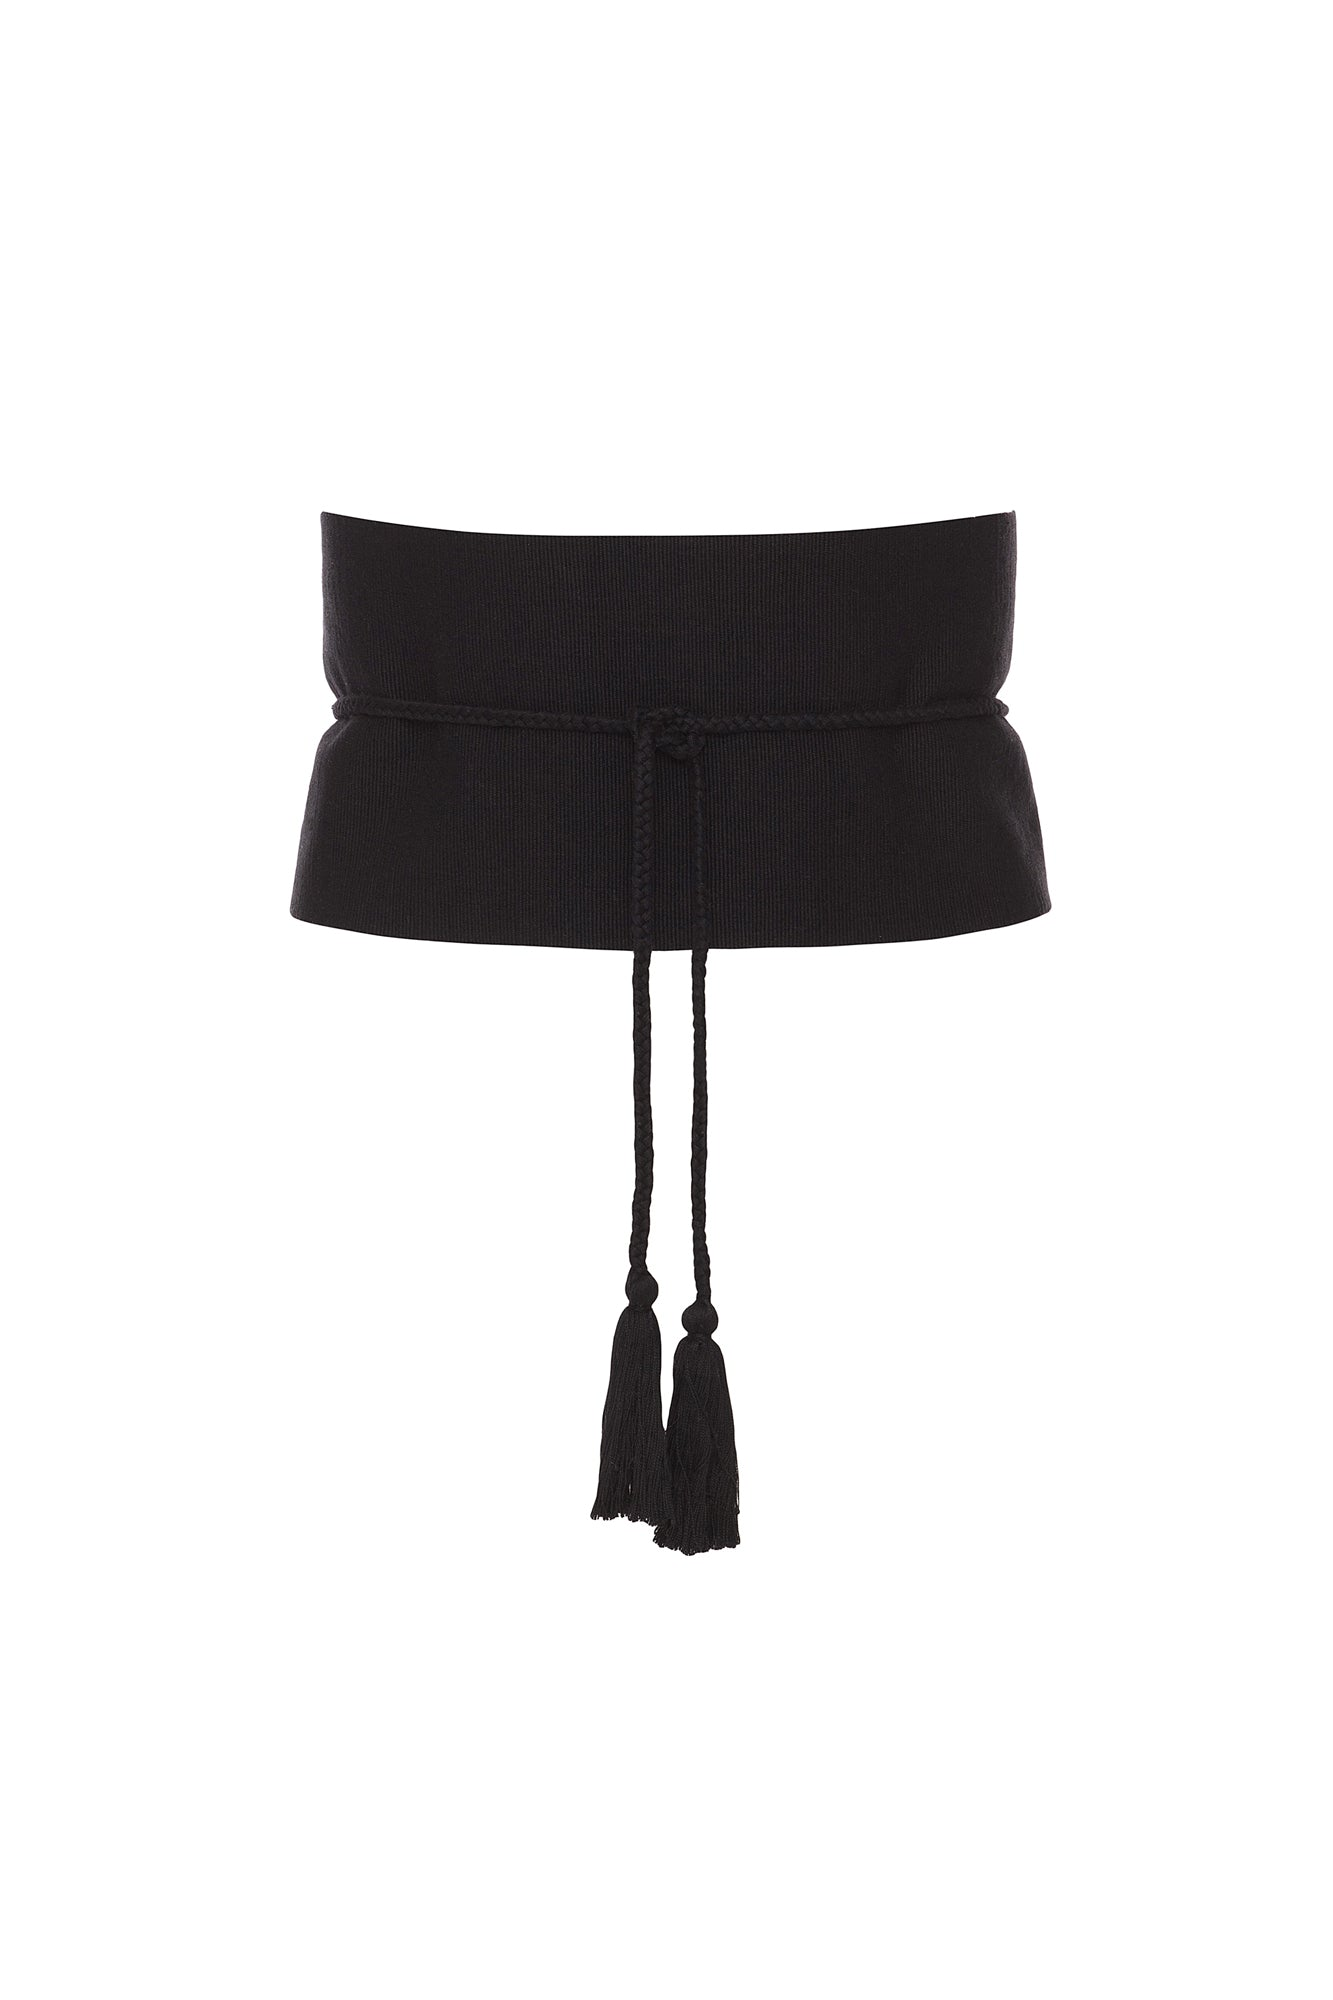 Carolina K Carmen Belt Black One Size